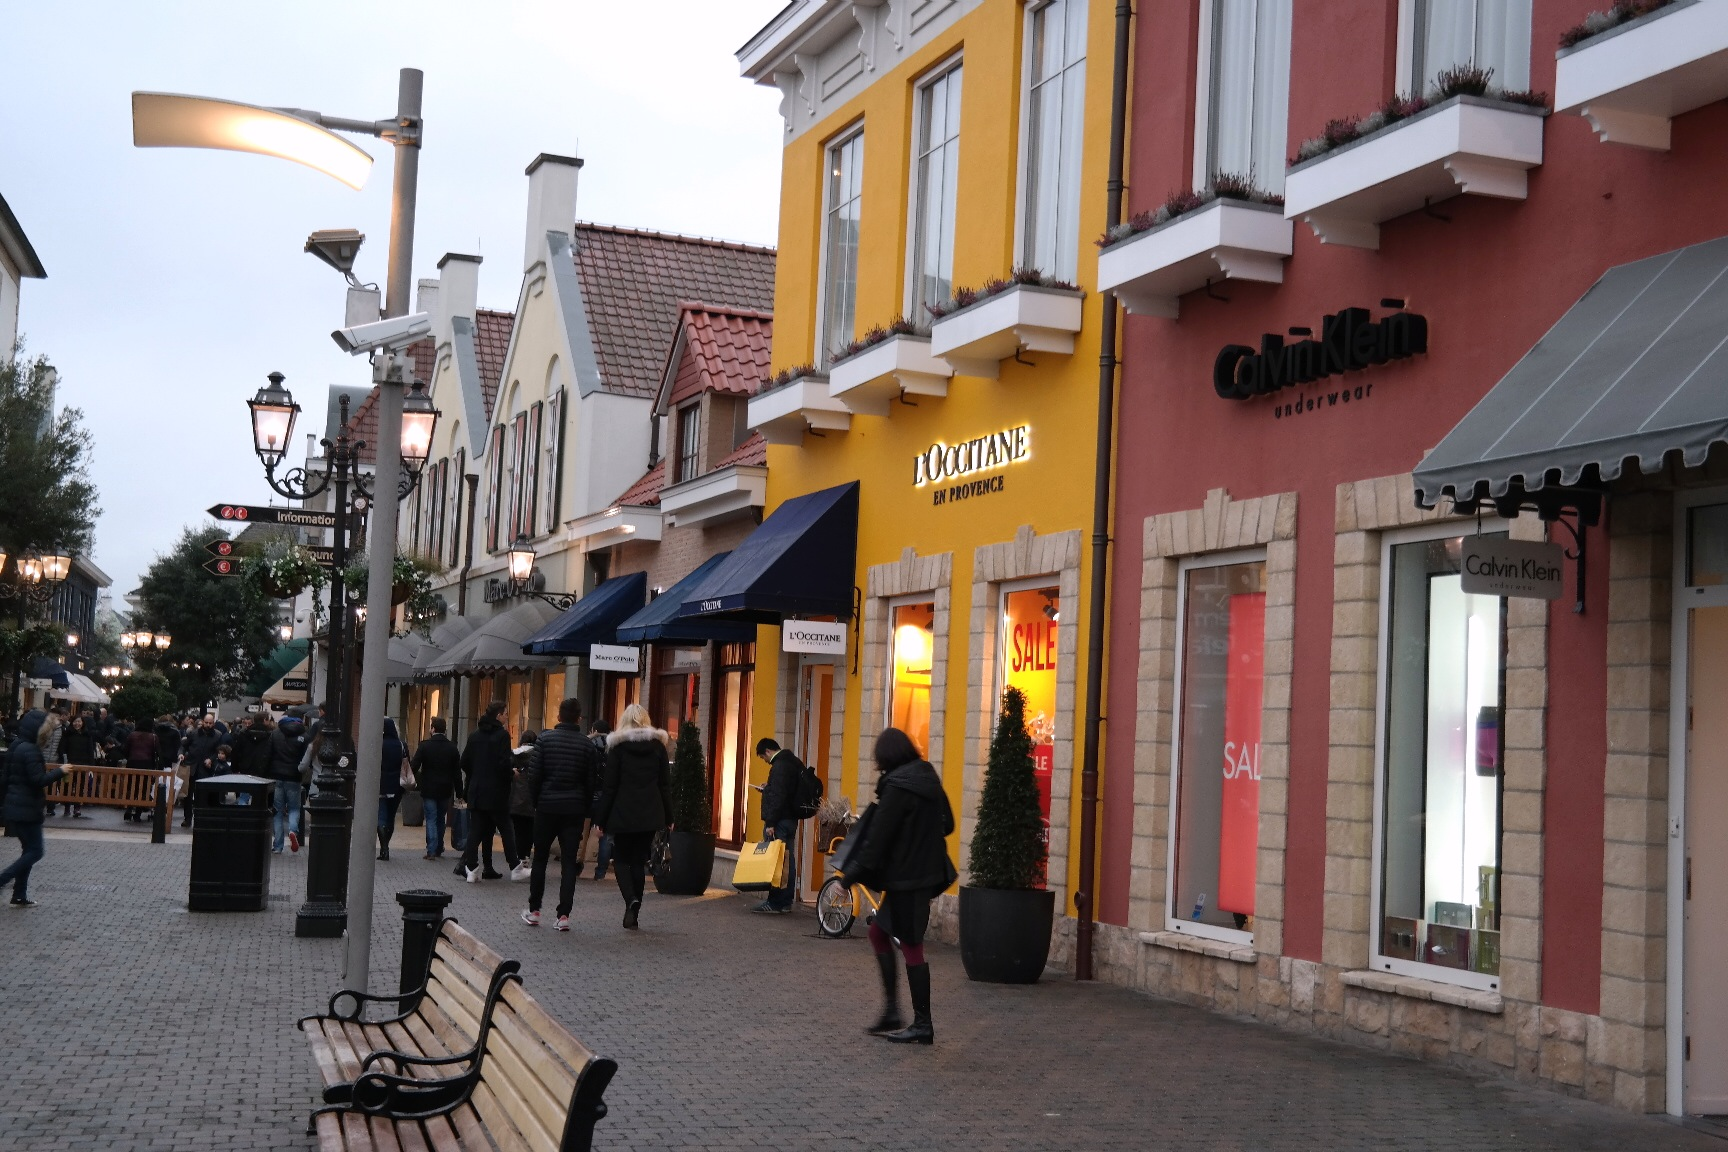 Outlets Netherlands. The largest guide to outlet shopping in Europe. More than outlets in Europe with updated information, addresses, opening hours, brands, links and maps.